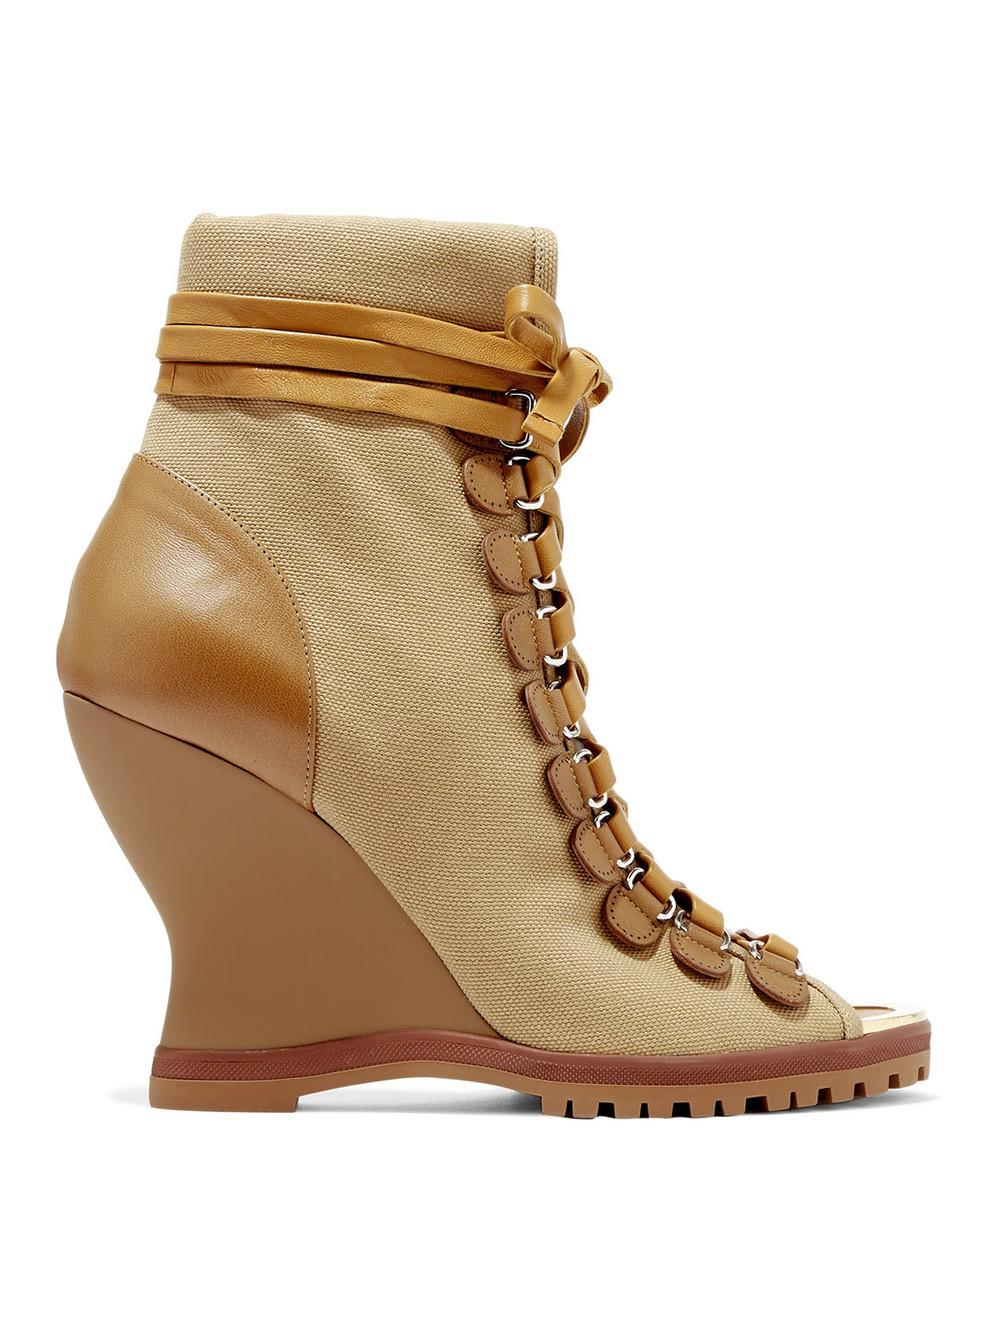 Chloé River Canvas And Leather Wedge Ankle Boots in Brown